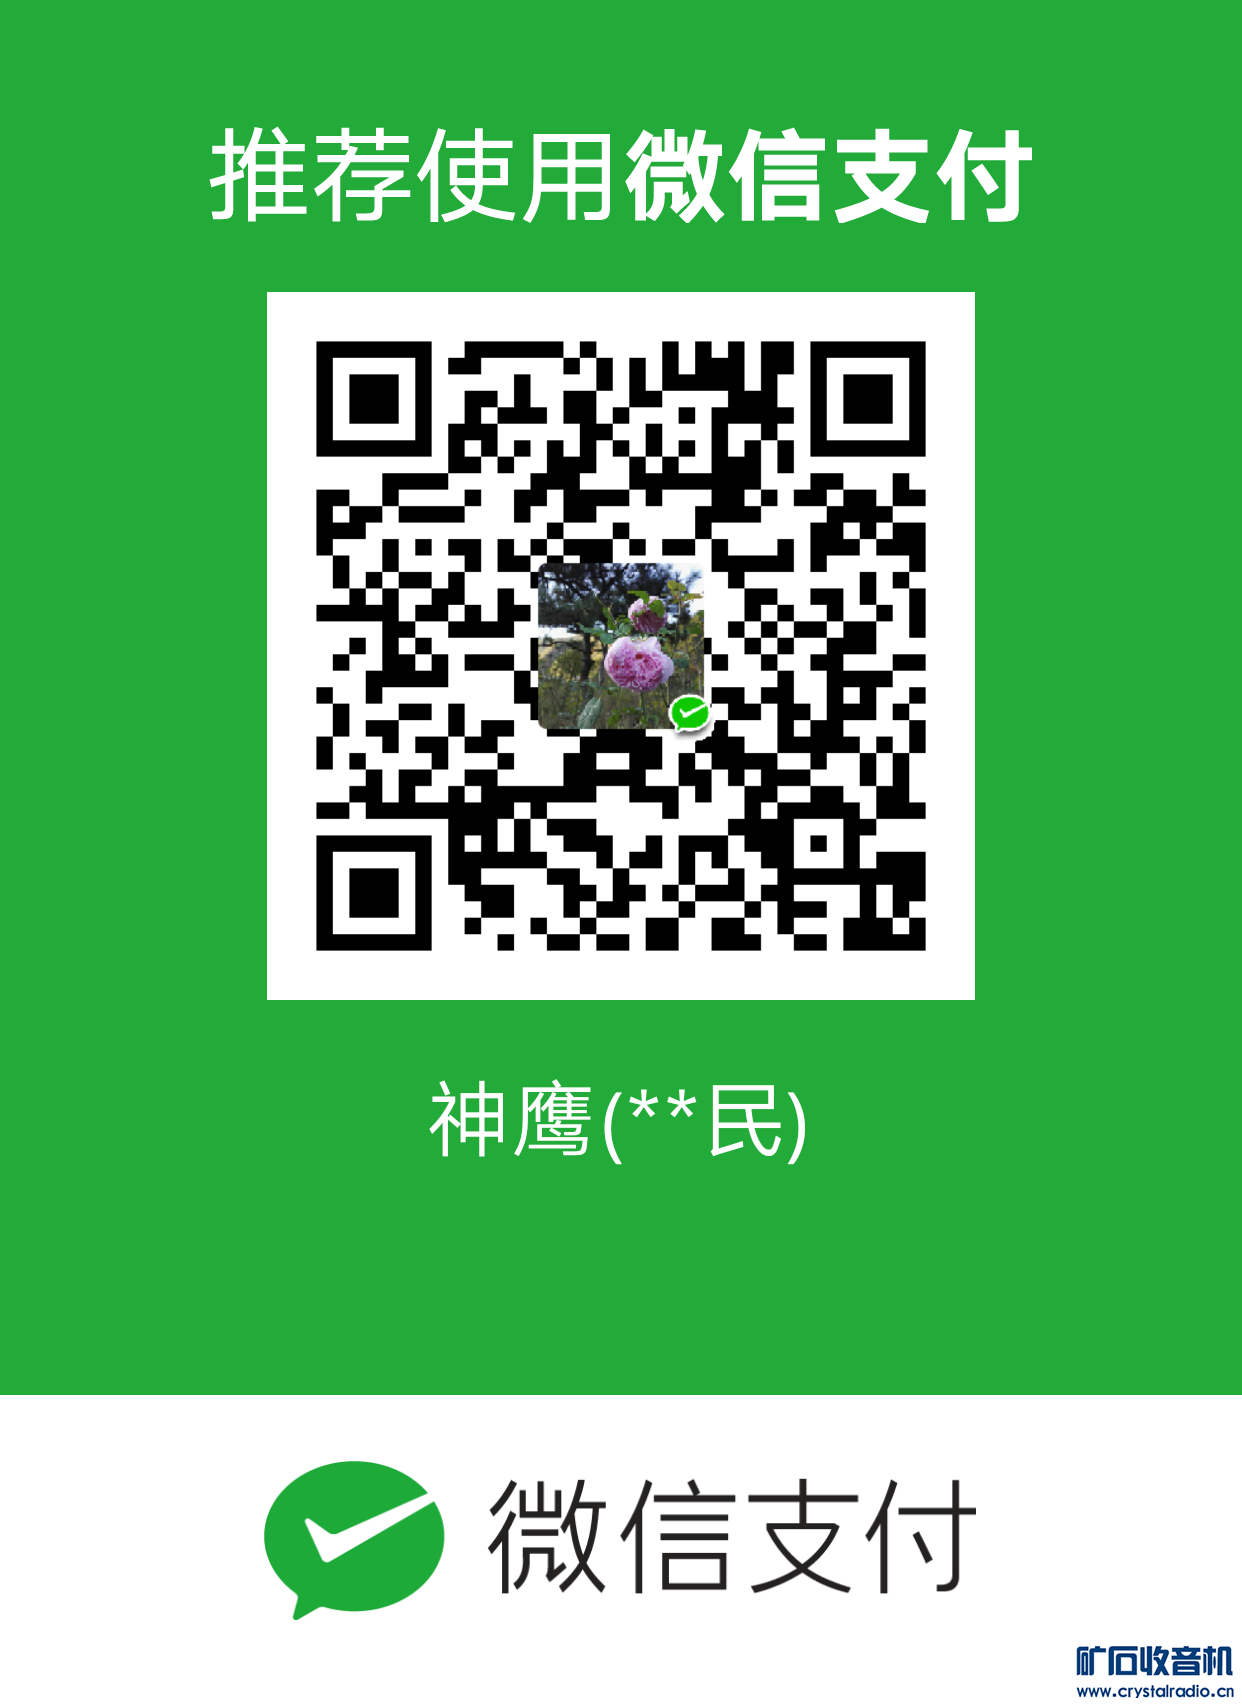 mm_facetoface_collect_qrcode_1603861084237.png